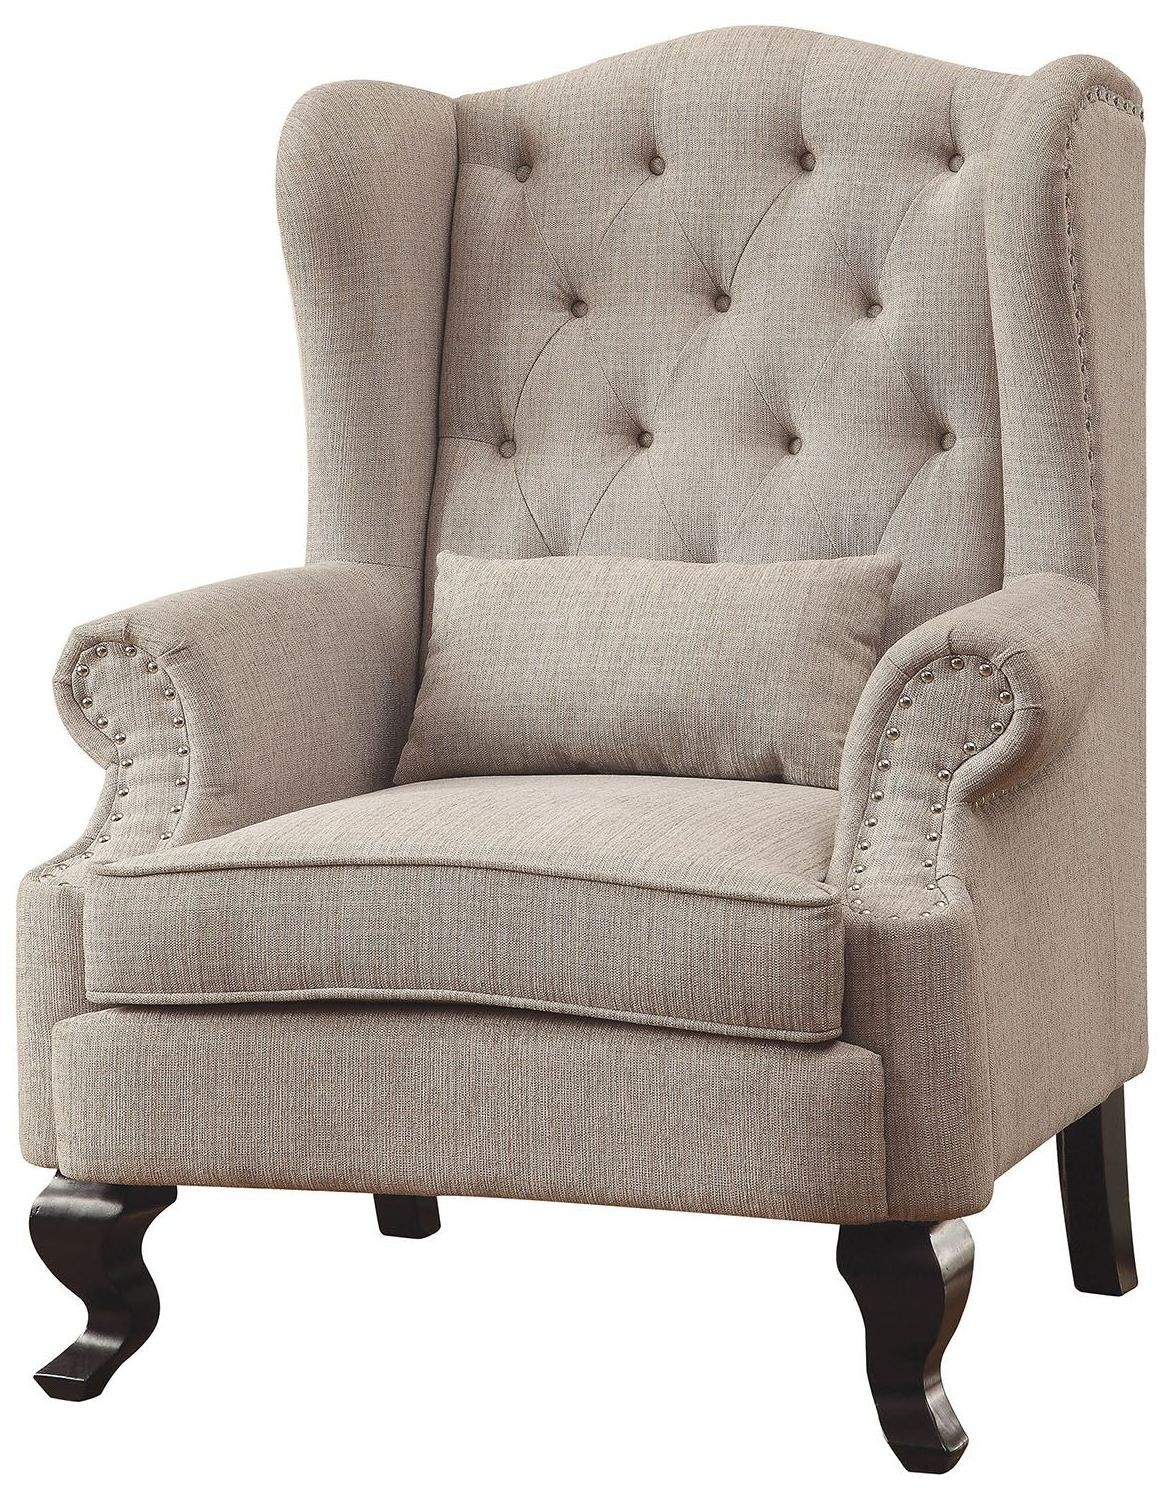 Simple Beige Accent Chair Ideas